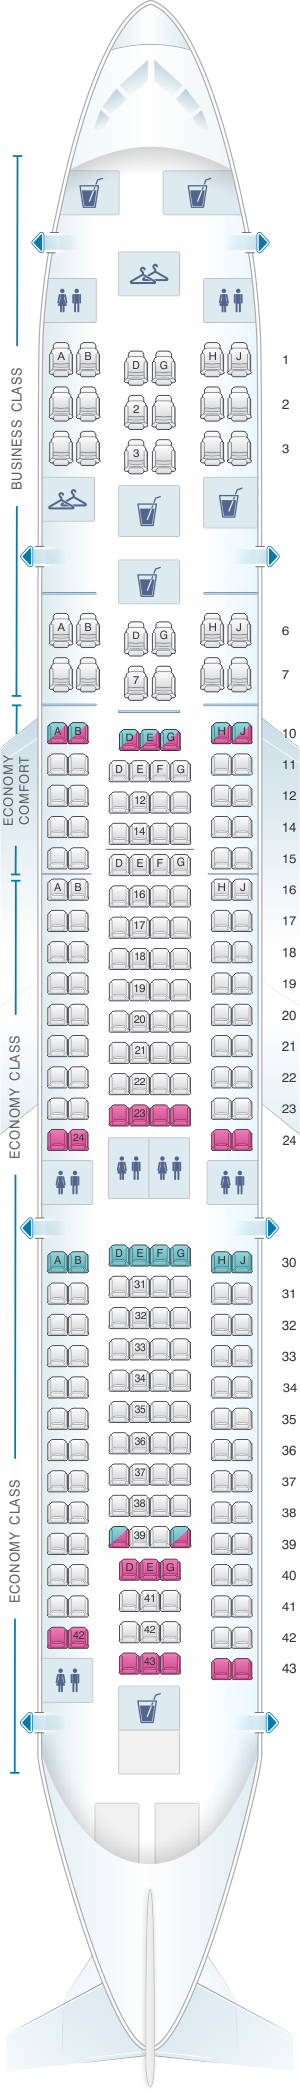 Seat Map Klm Airbus A330 200